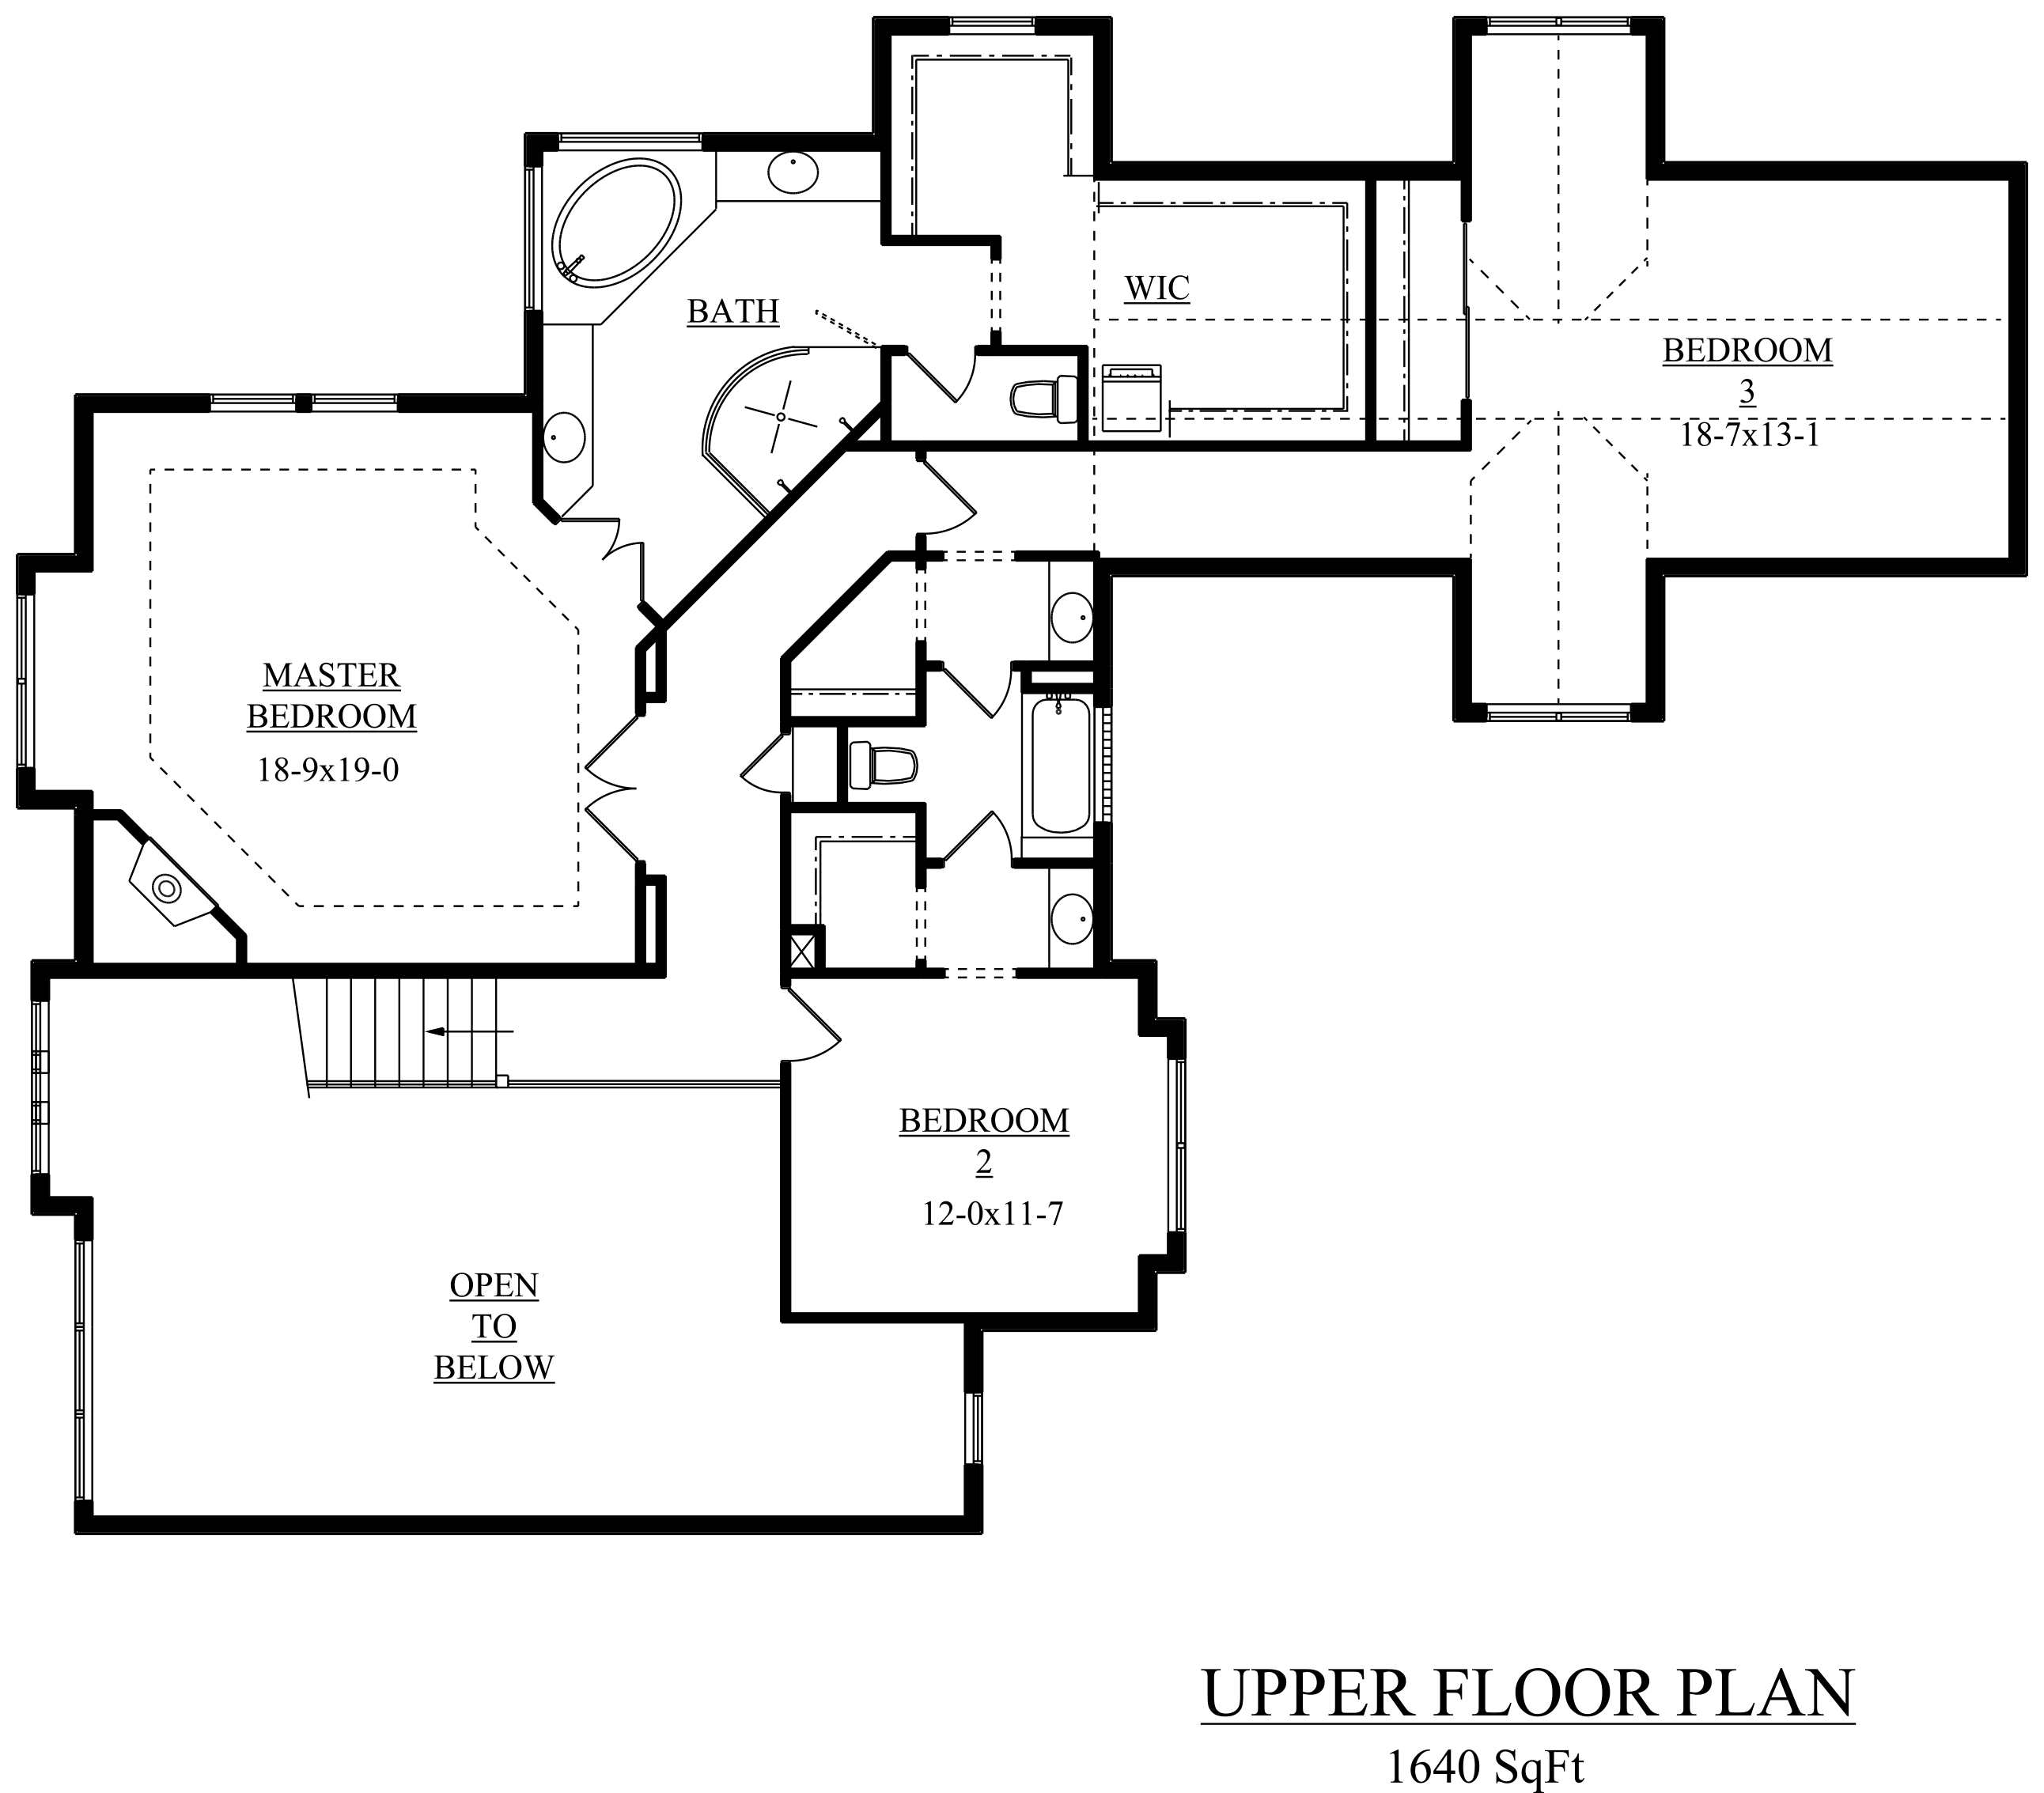 p2-the-nantucket-upper-floor-r-c